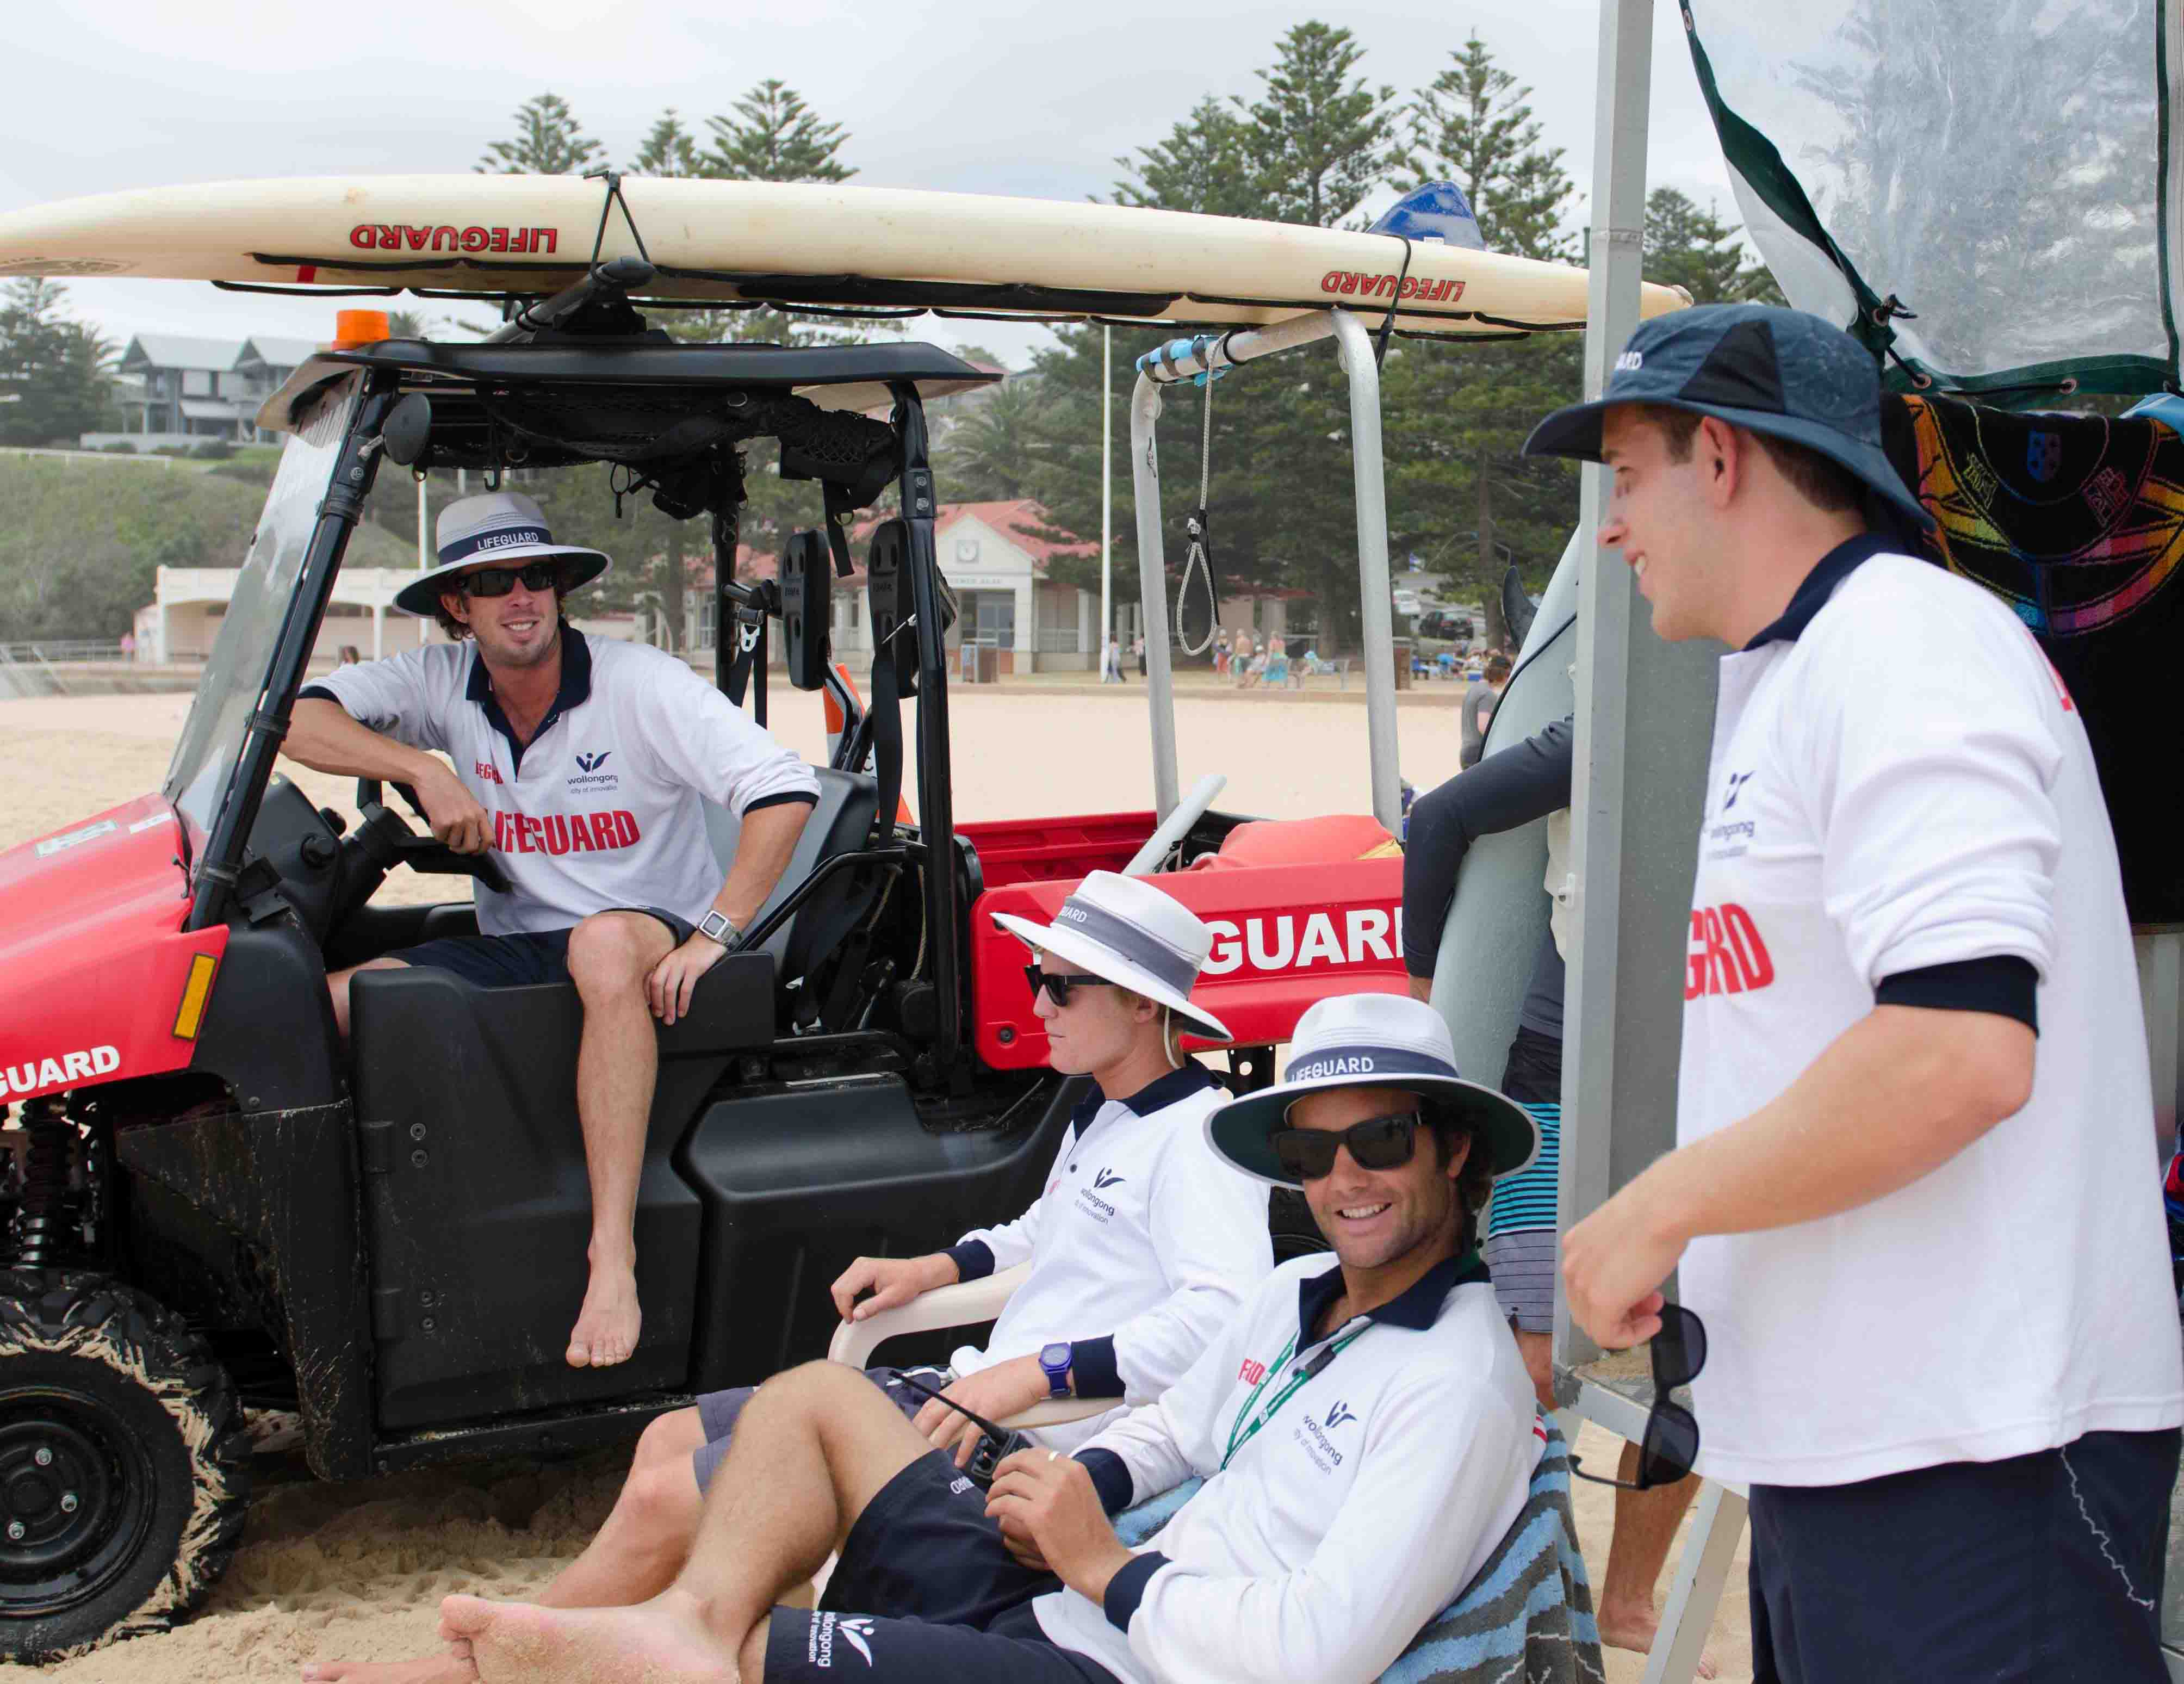 Canadian liuard helps out at Austi Beach | The Bulli Times on golf cart shopping, golf cart surfing, golf cart batman, golf cart paint ideas, golf cart fishing, golf cart driver,